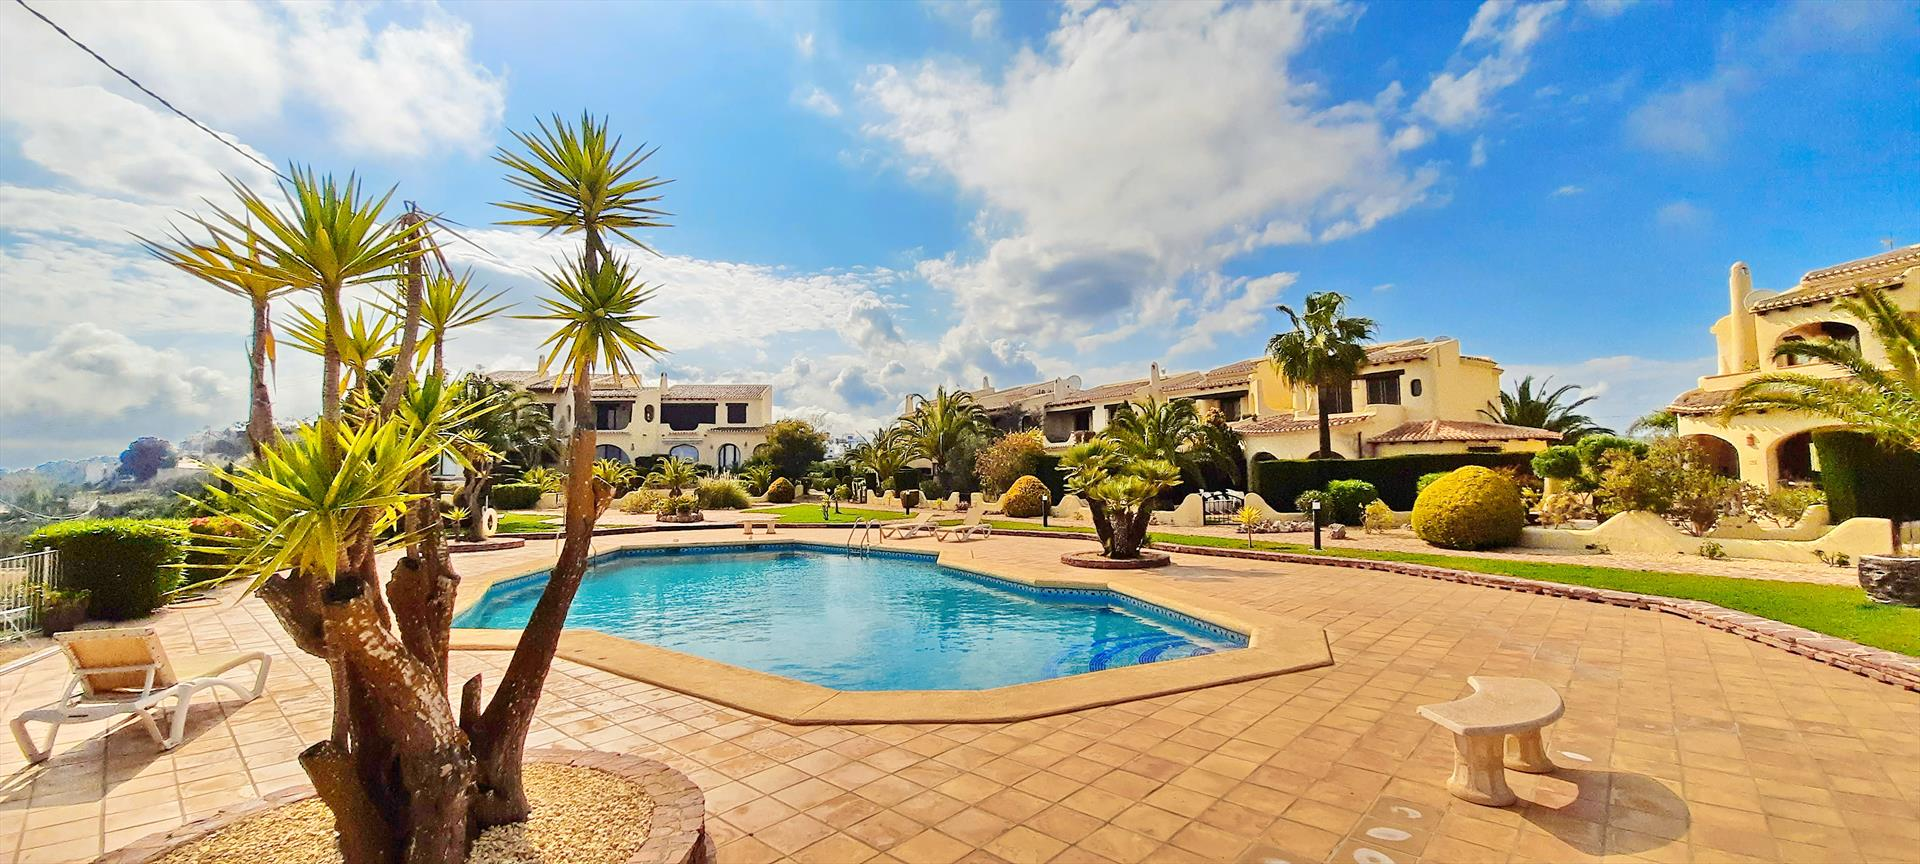 El Sarchal Moraira,Wonderful and cheerful holiday house in Moraira, on the Costa Blanca, Spain  with communal pool for 6 persons.....